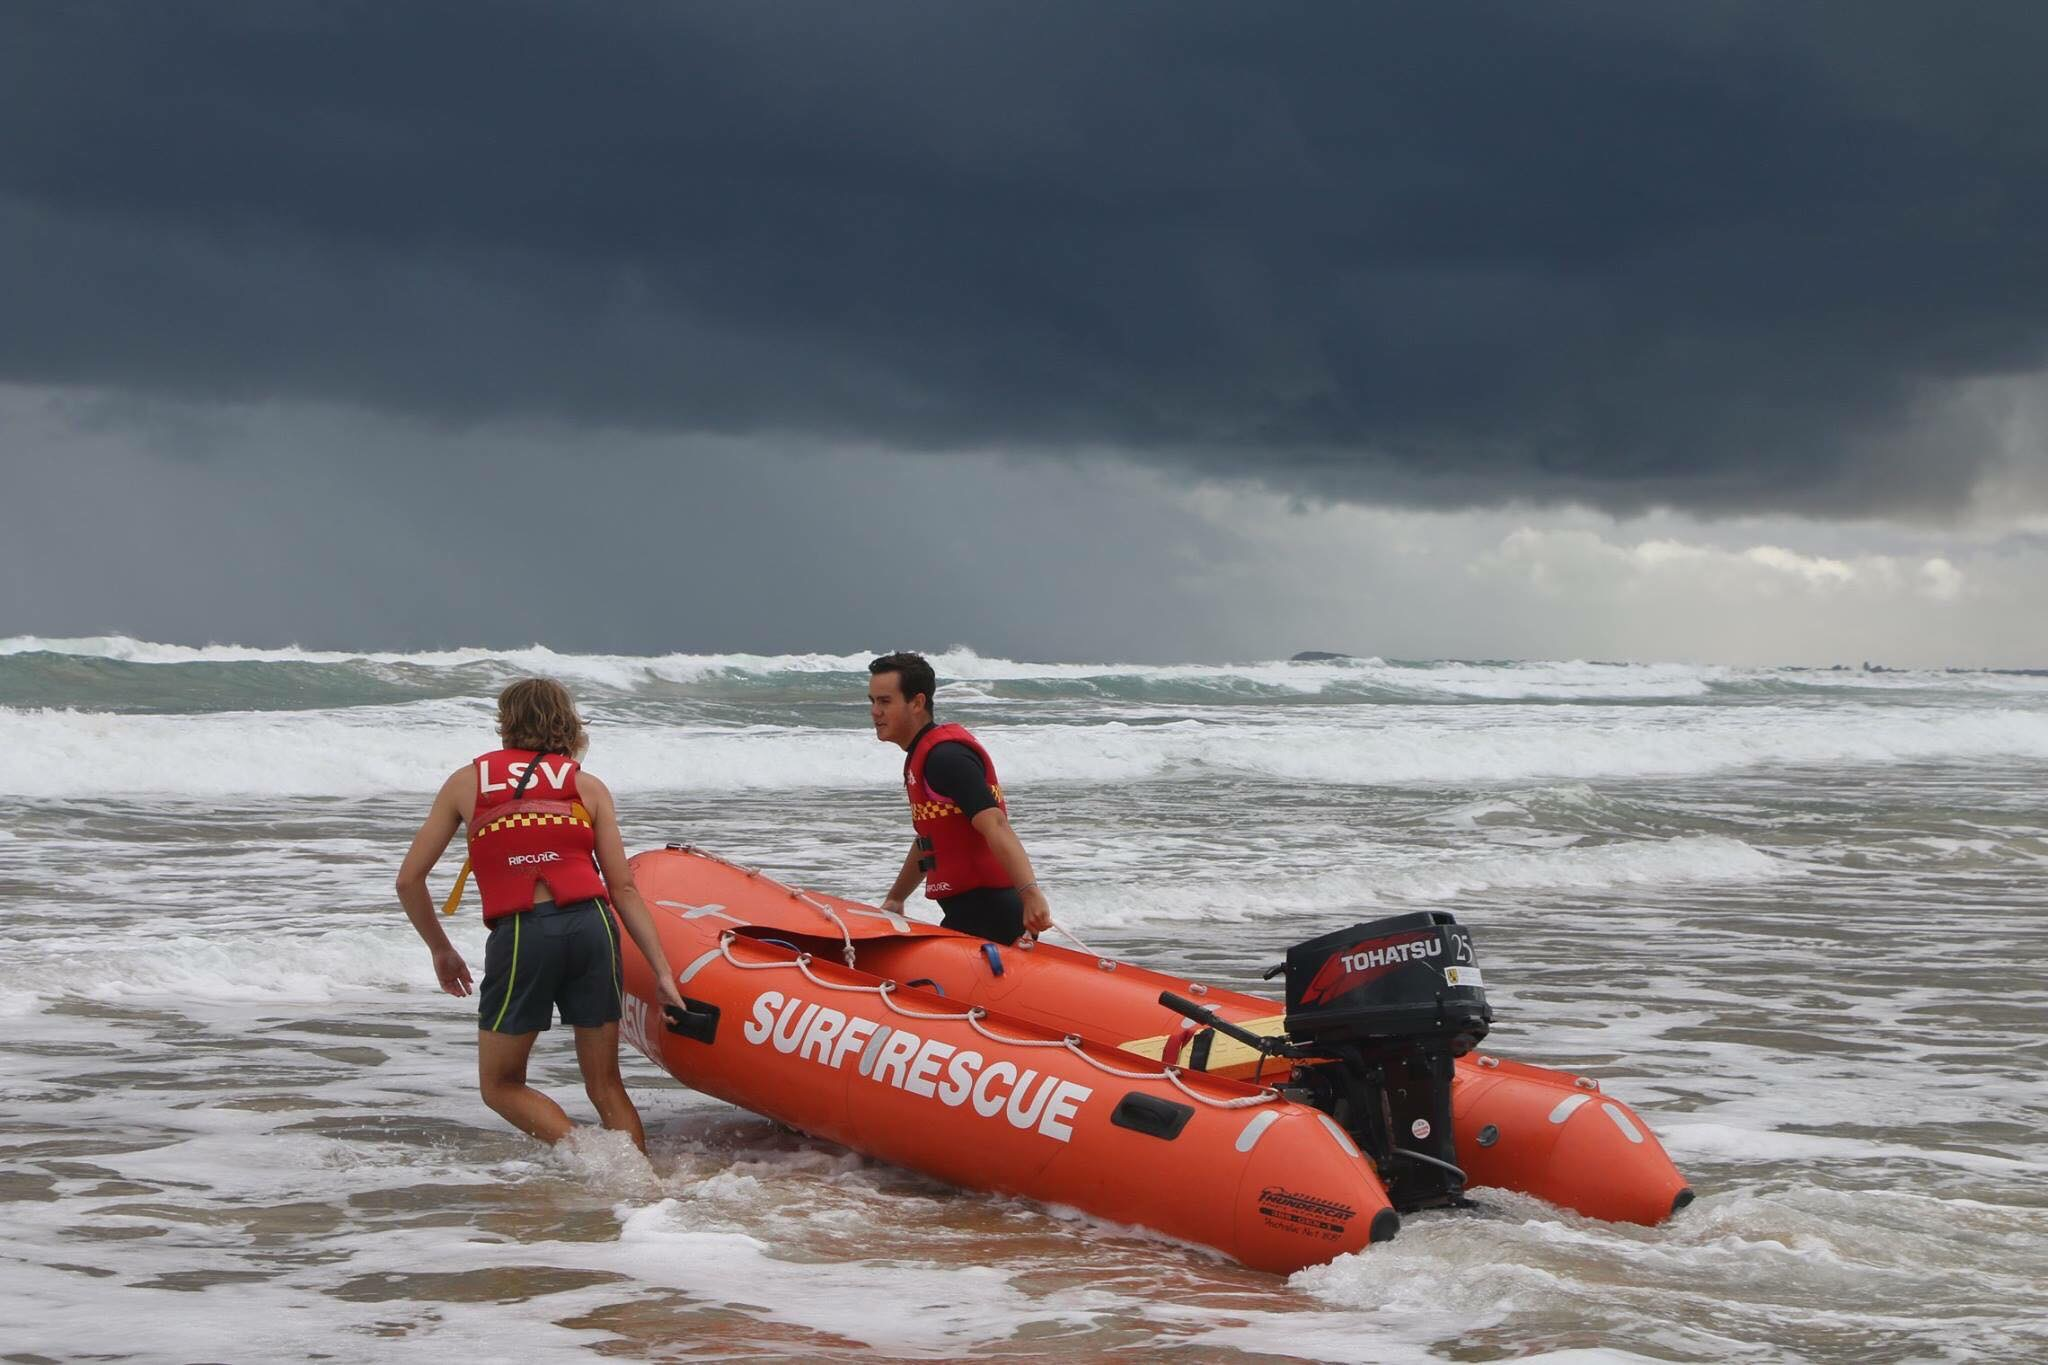 Surf Rescue - Patrolling two beaches, in the bay and in the surf.